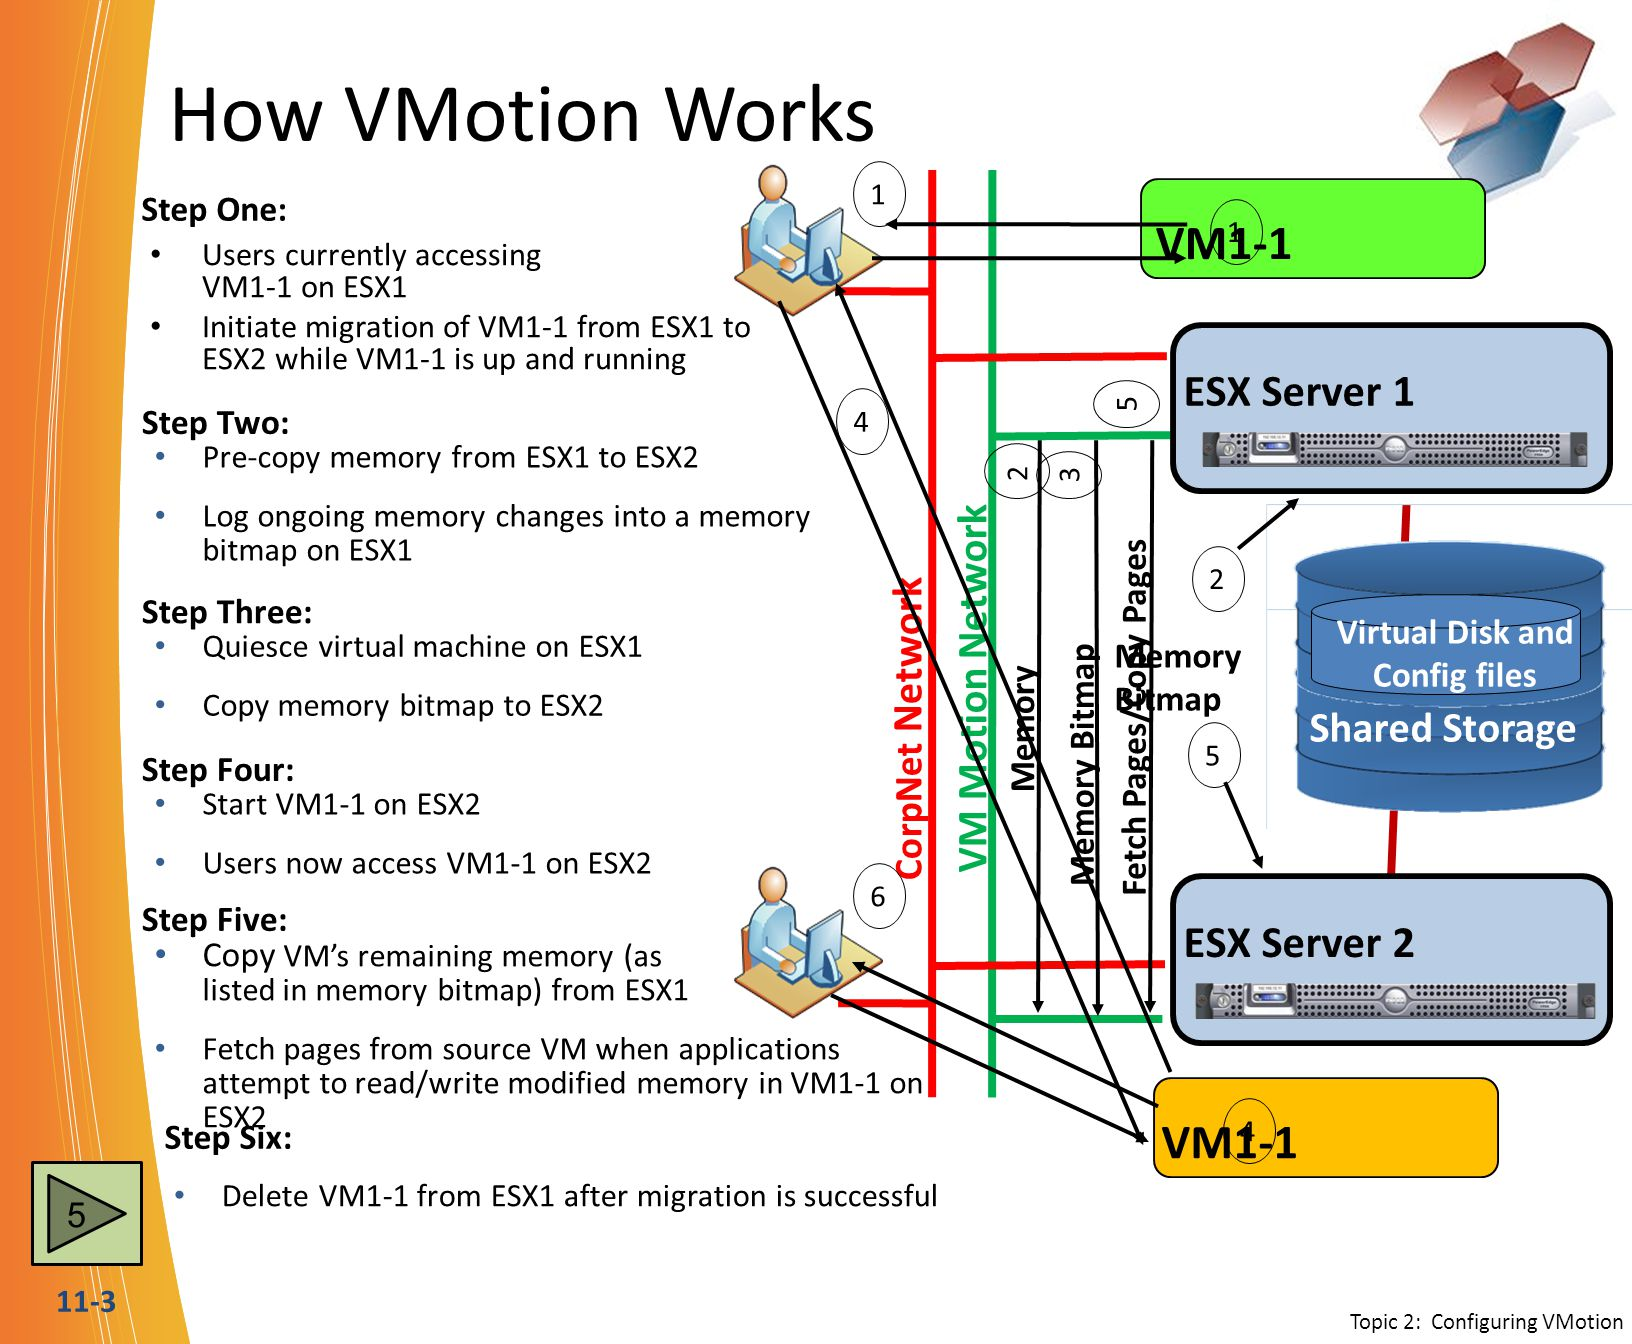 11-3 How VMotion Works Users currently accessing VM1-1 on ESX1 Initiate migration of VM1-1 from ESX1 to ESX2 while VM1-1 is up and running ESX Server